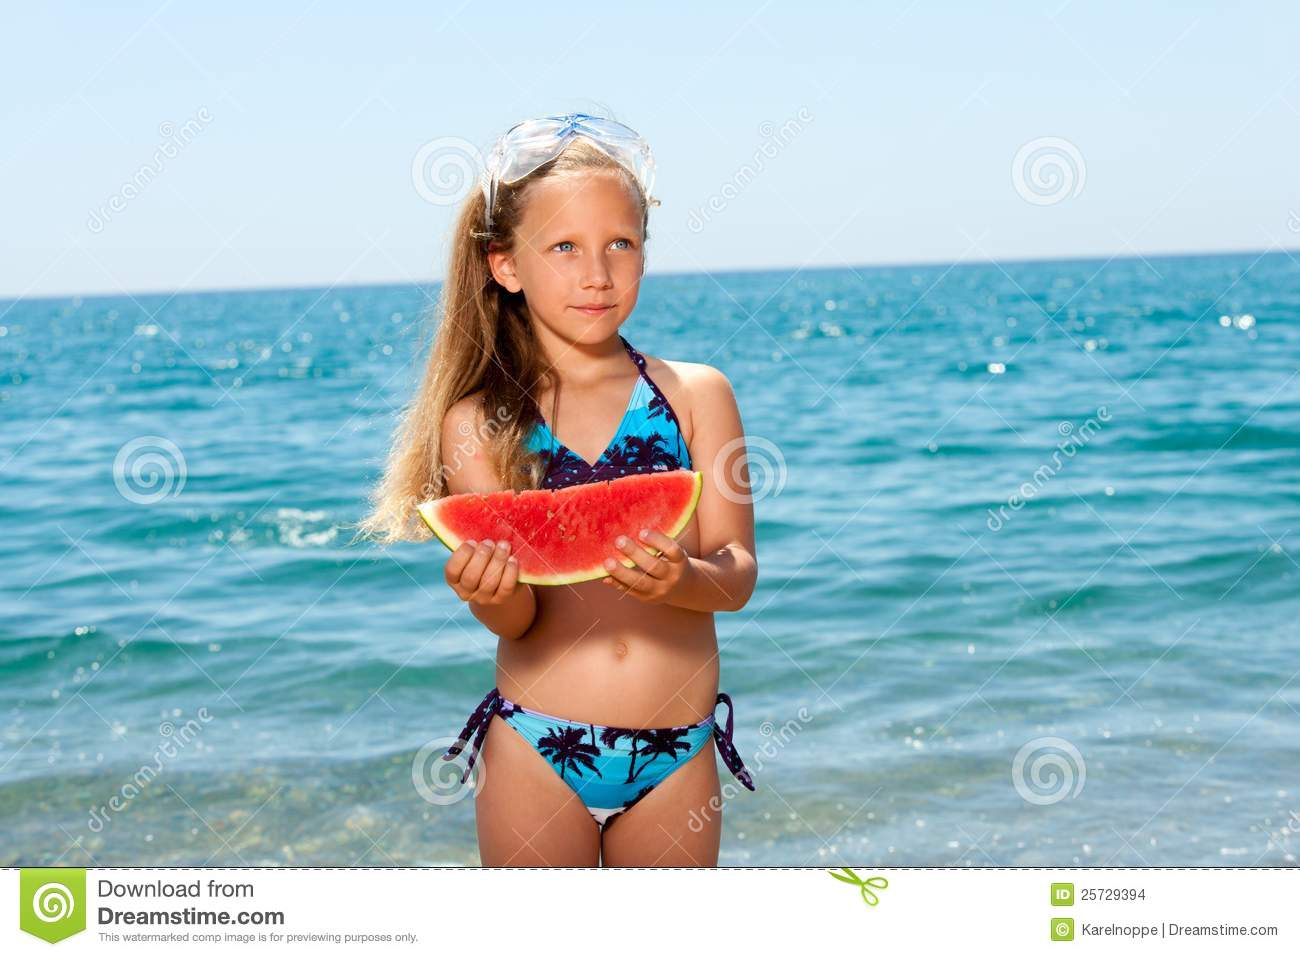 Report Cute girl eating watermelon on  (1300x957)